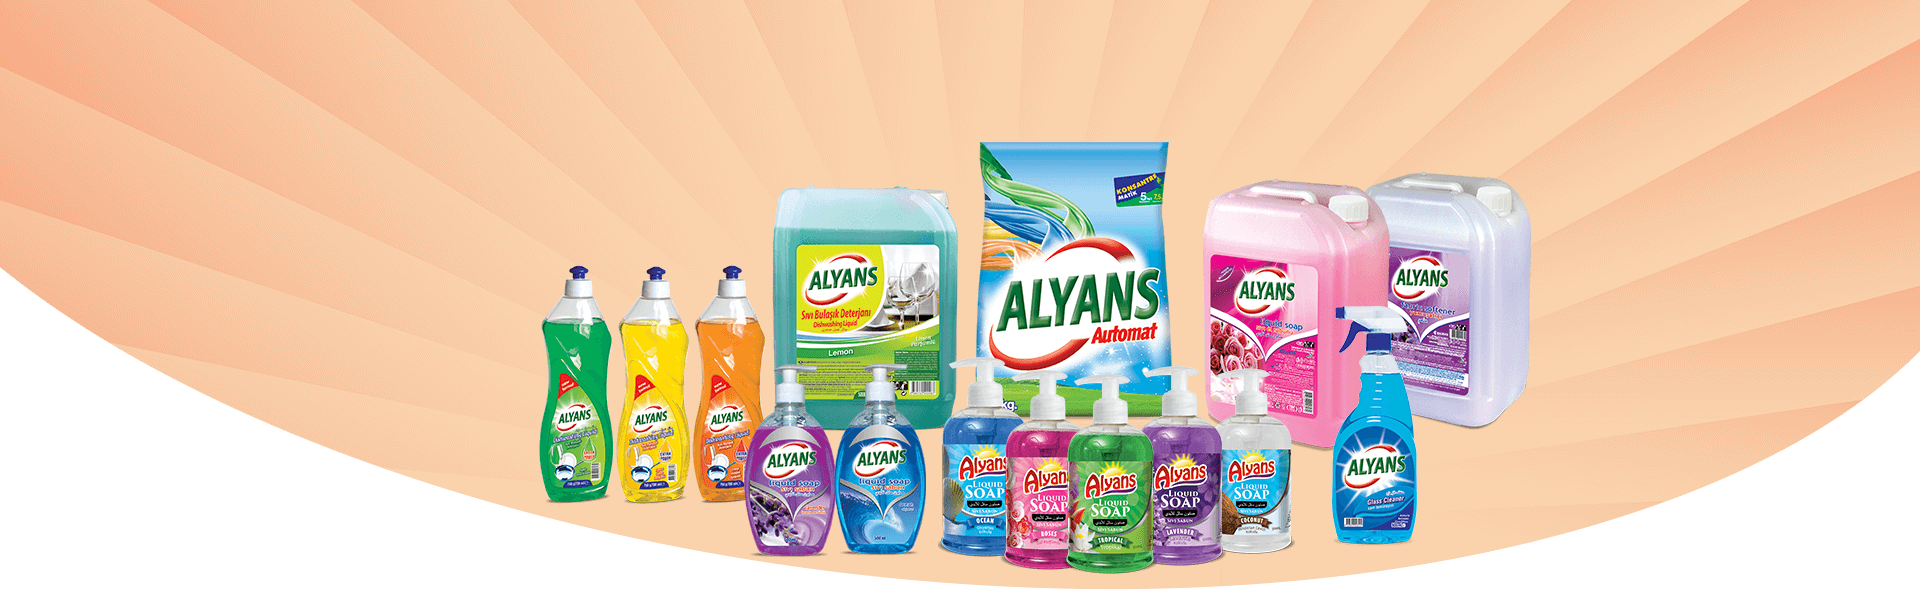 Alyans Cleaning Products